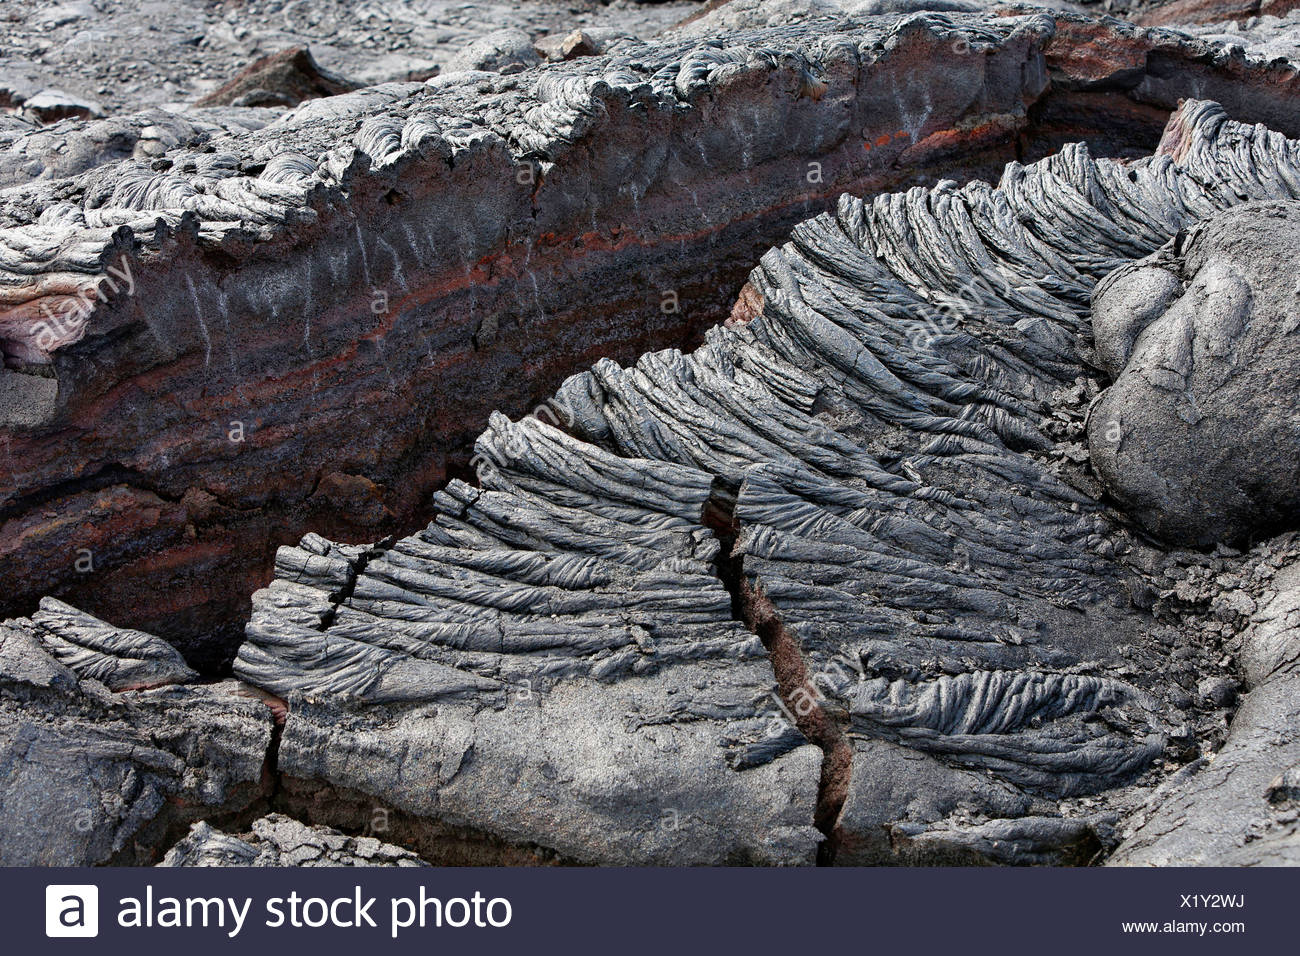 Pahoehoe lava, detail view, East Rift Zone, Kilauea volcano, Big Island, Hawaii, USA - Stock Image